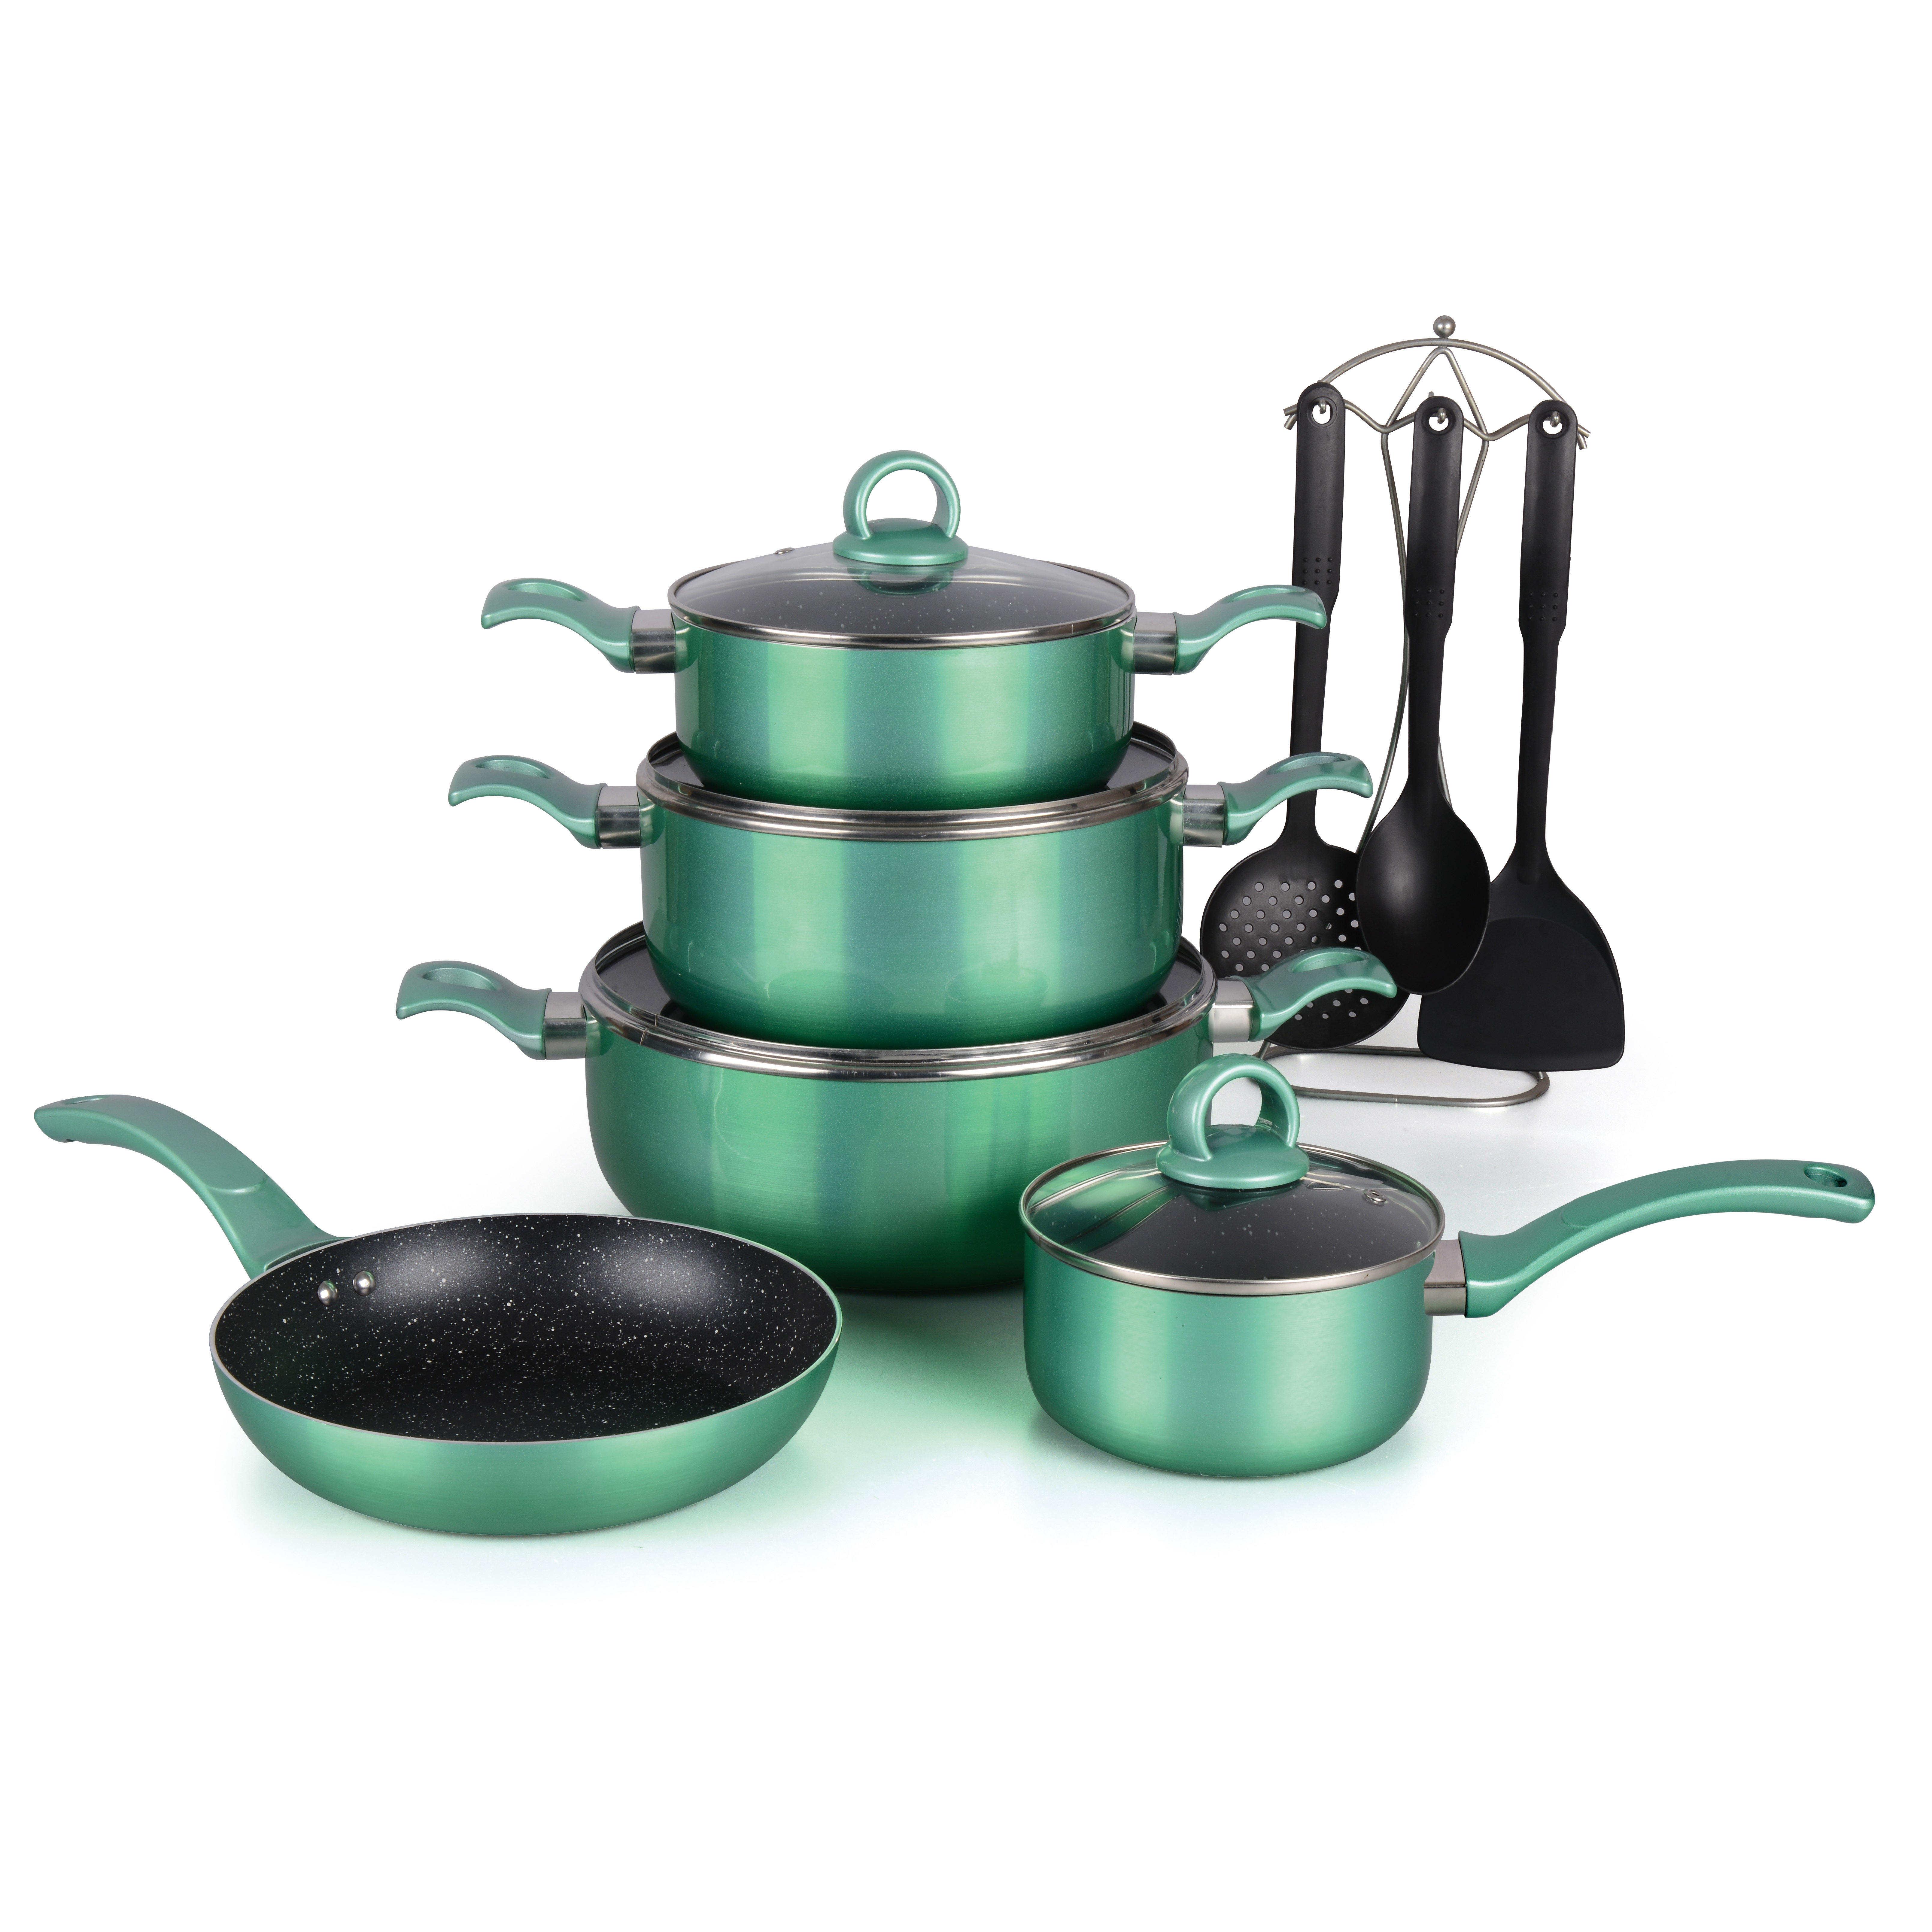 9pcs aluminum marble non stick coating kitchen cookware with bakelite handle non-stick cookware